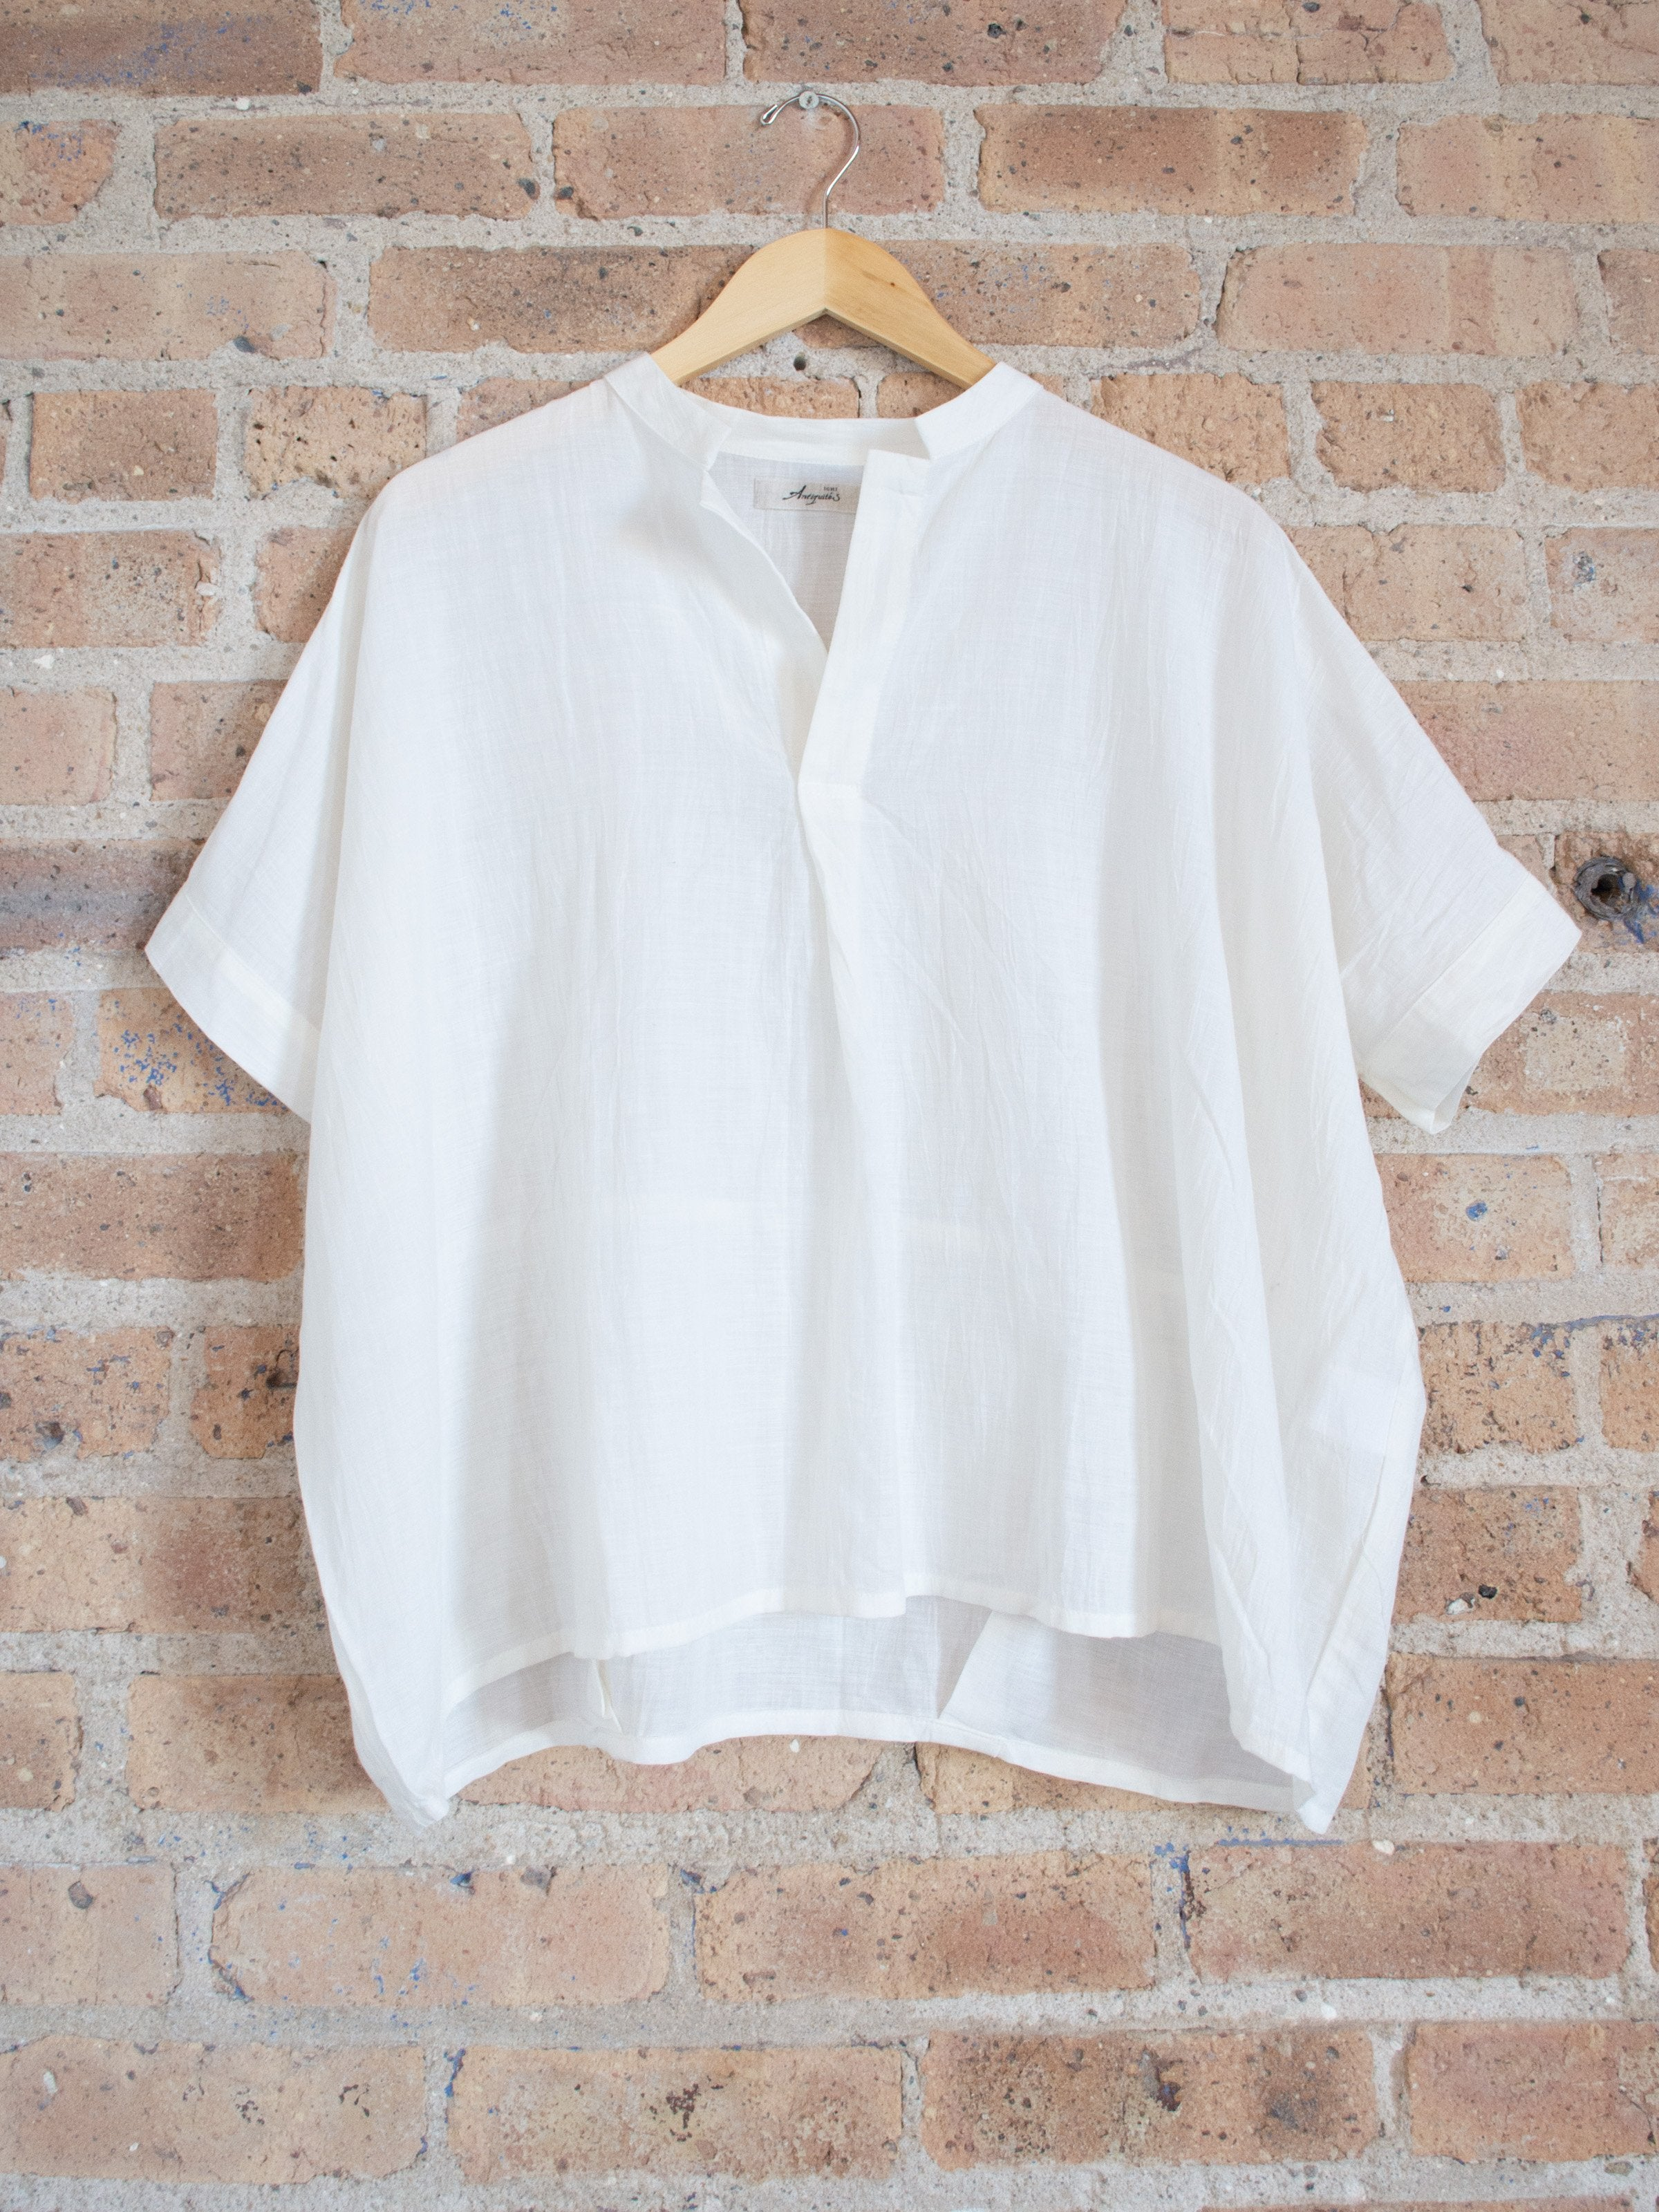 Namu Shop - Ichi Antiquites Cotton Linen Blouse - White